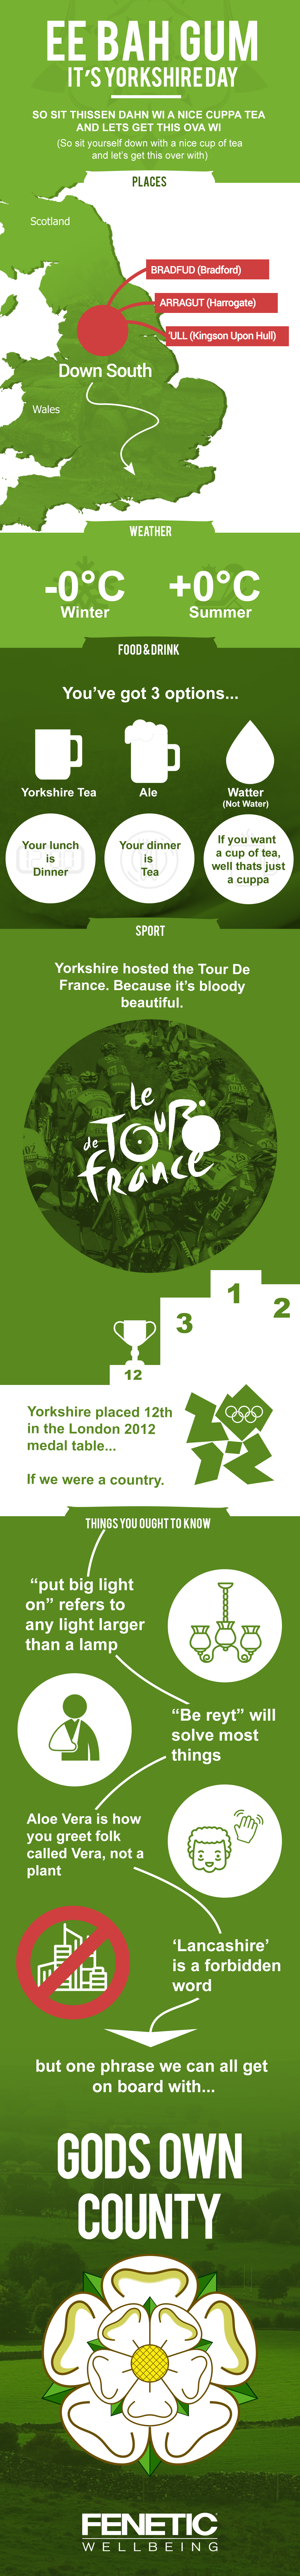 Yorkshire Day Infographic